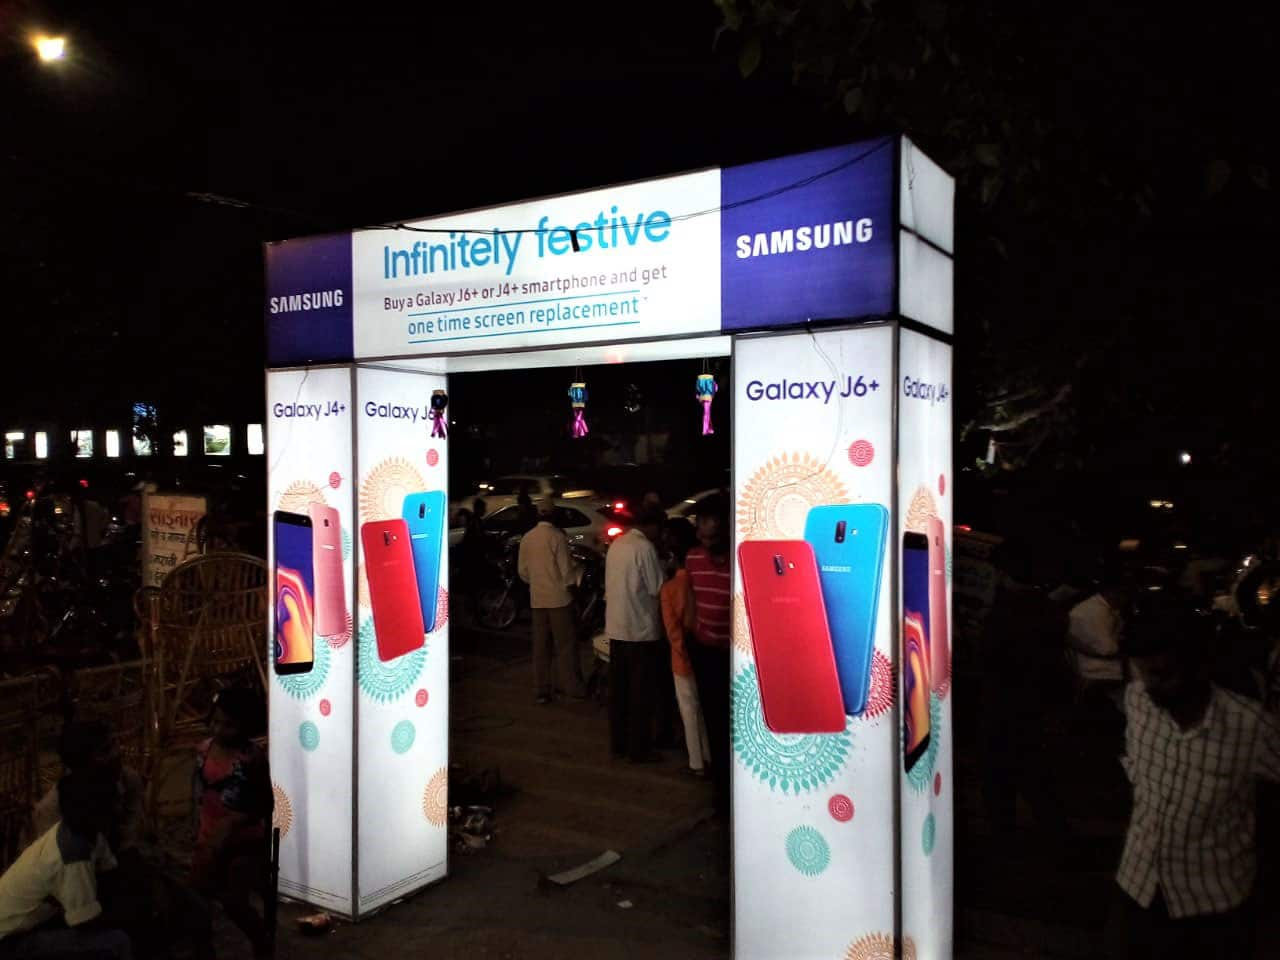 a brightly lit backlit promotional arch displaying ads for samsung mobiles installed in a crowded market place